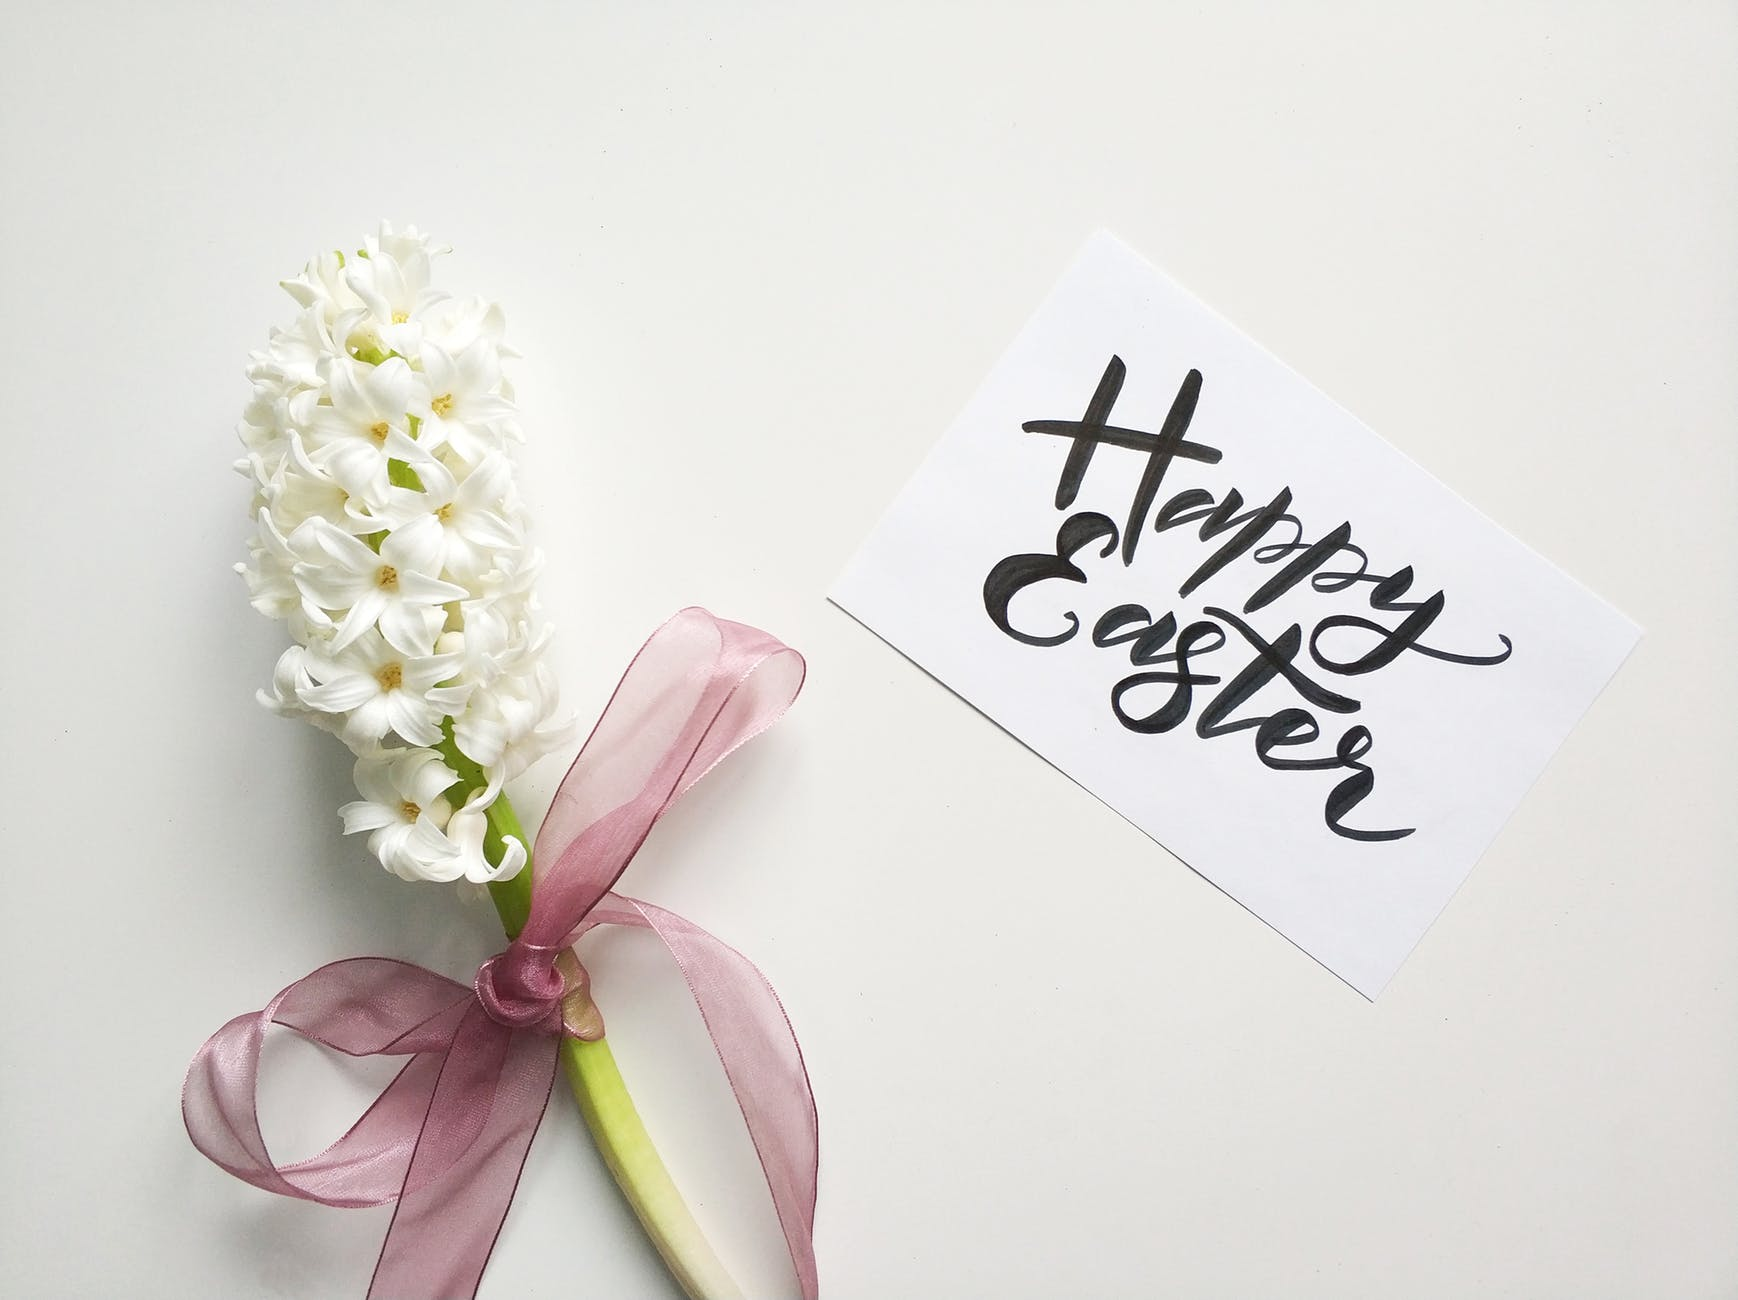 Happy Easter 2019 Images Wallpapers Quotes Messages 1738x1300